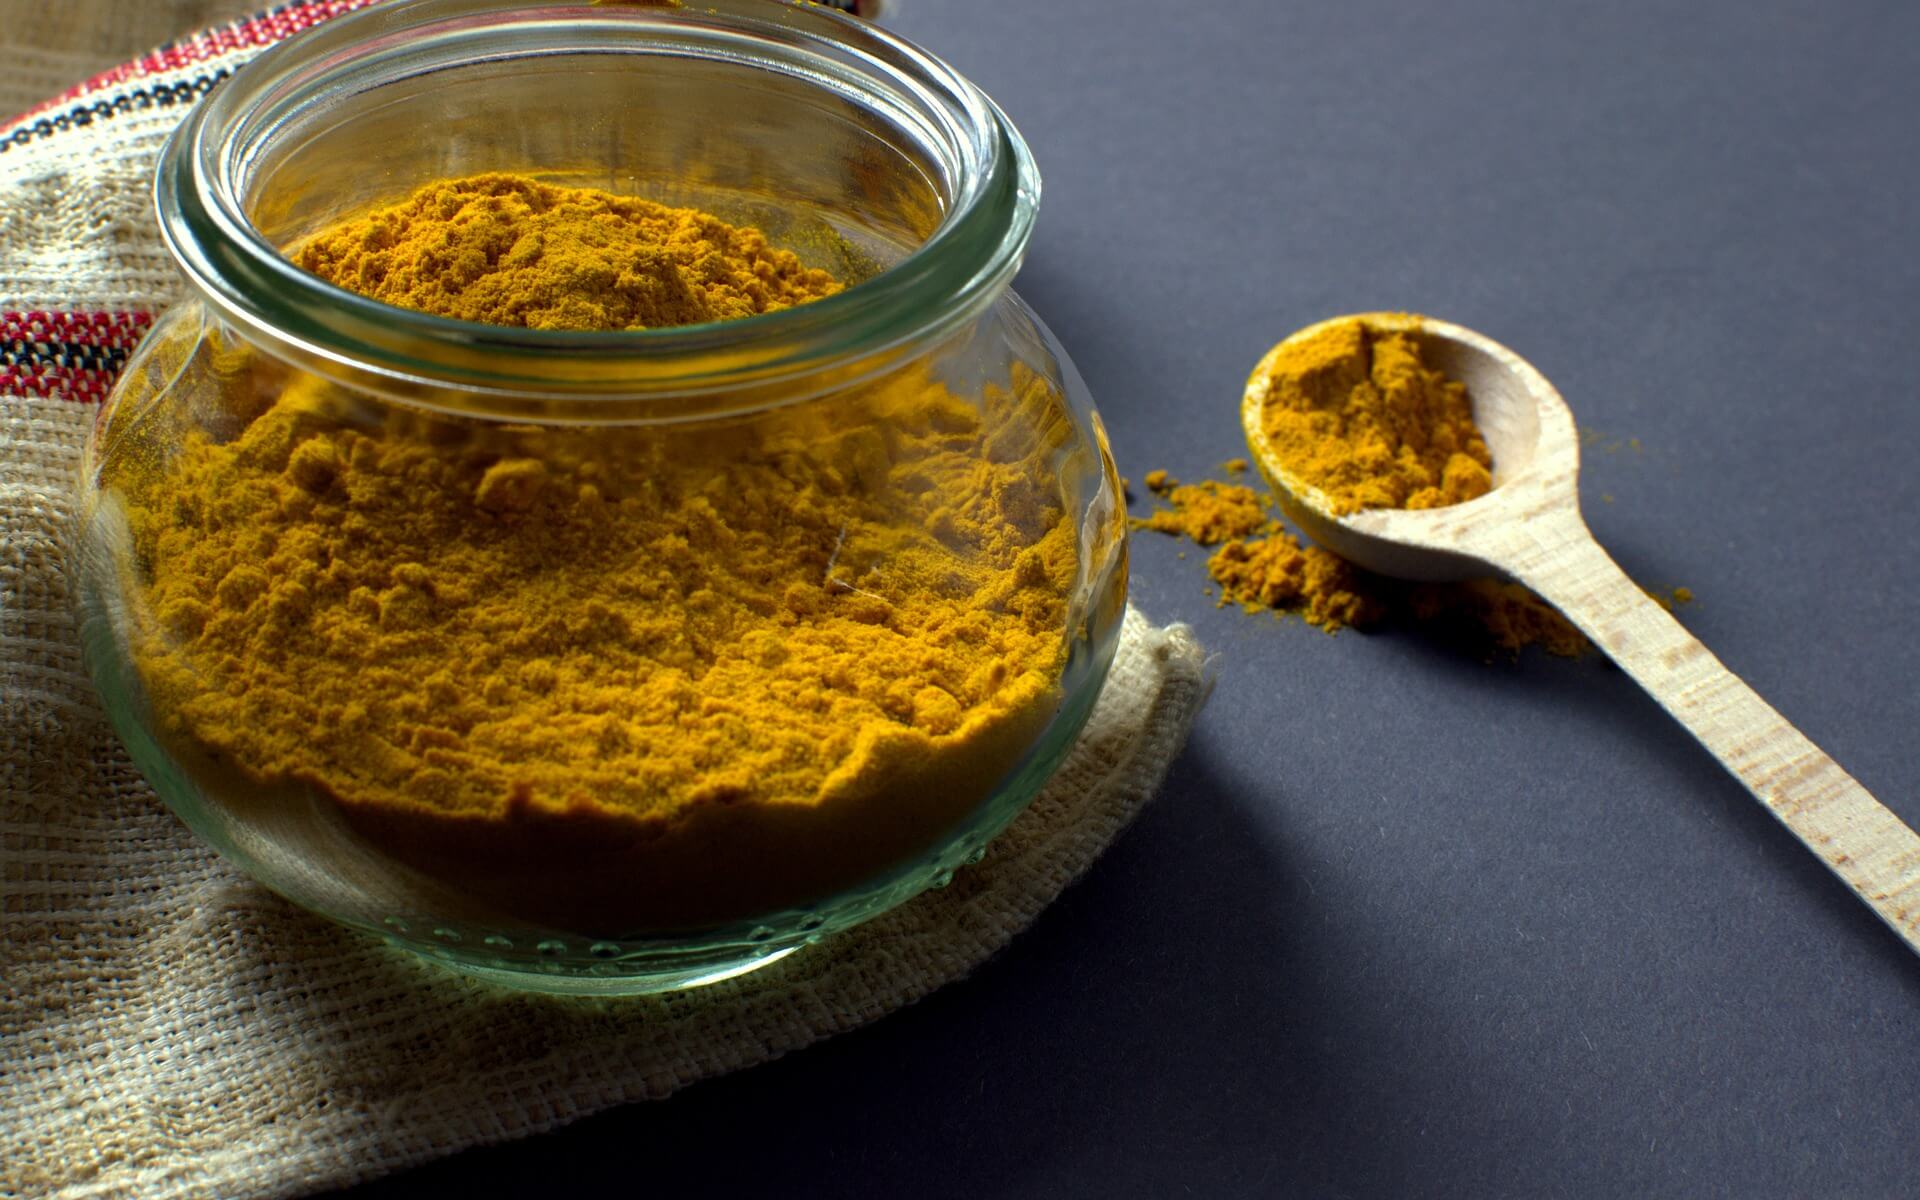 The potential health benefits of curcumin include better regulation of inflammation. It is used in the treatment of numerous inflammatory conditions for its anti-inflammatory effects. Curcumin is thought to slow down the inflammatory pathway, although this line